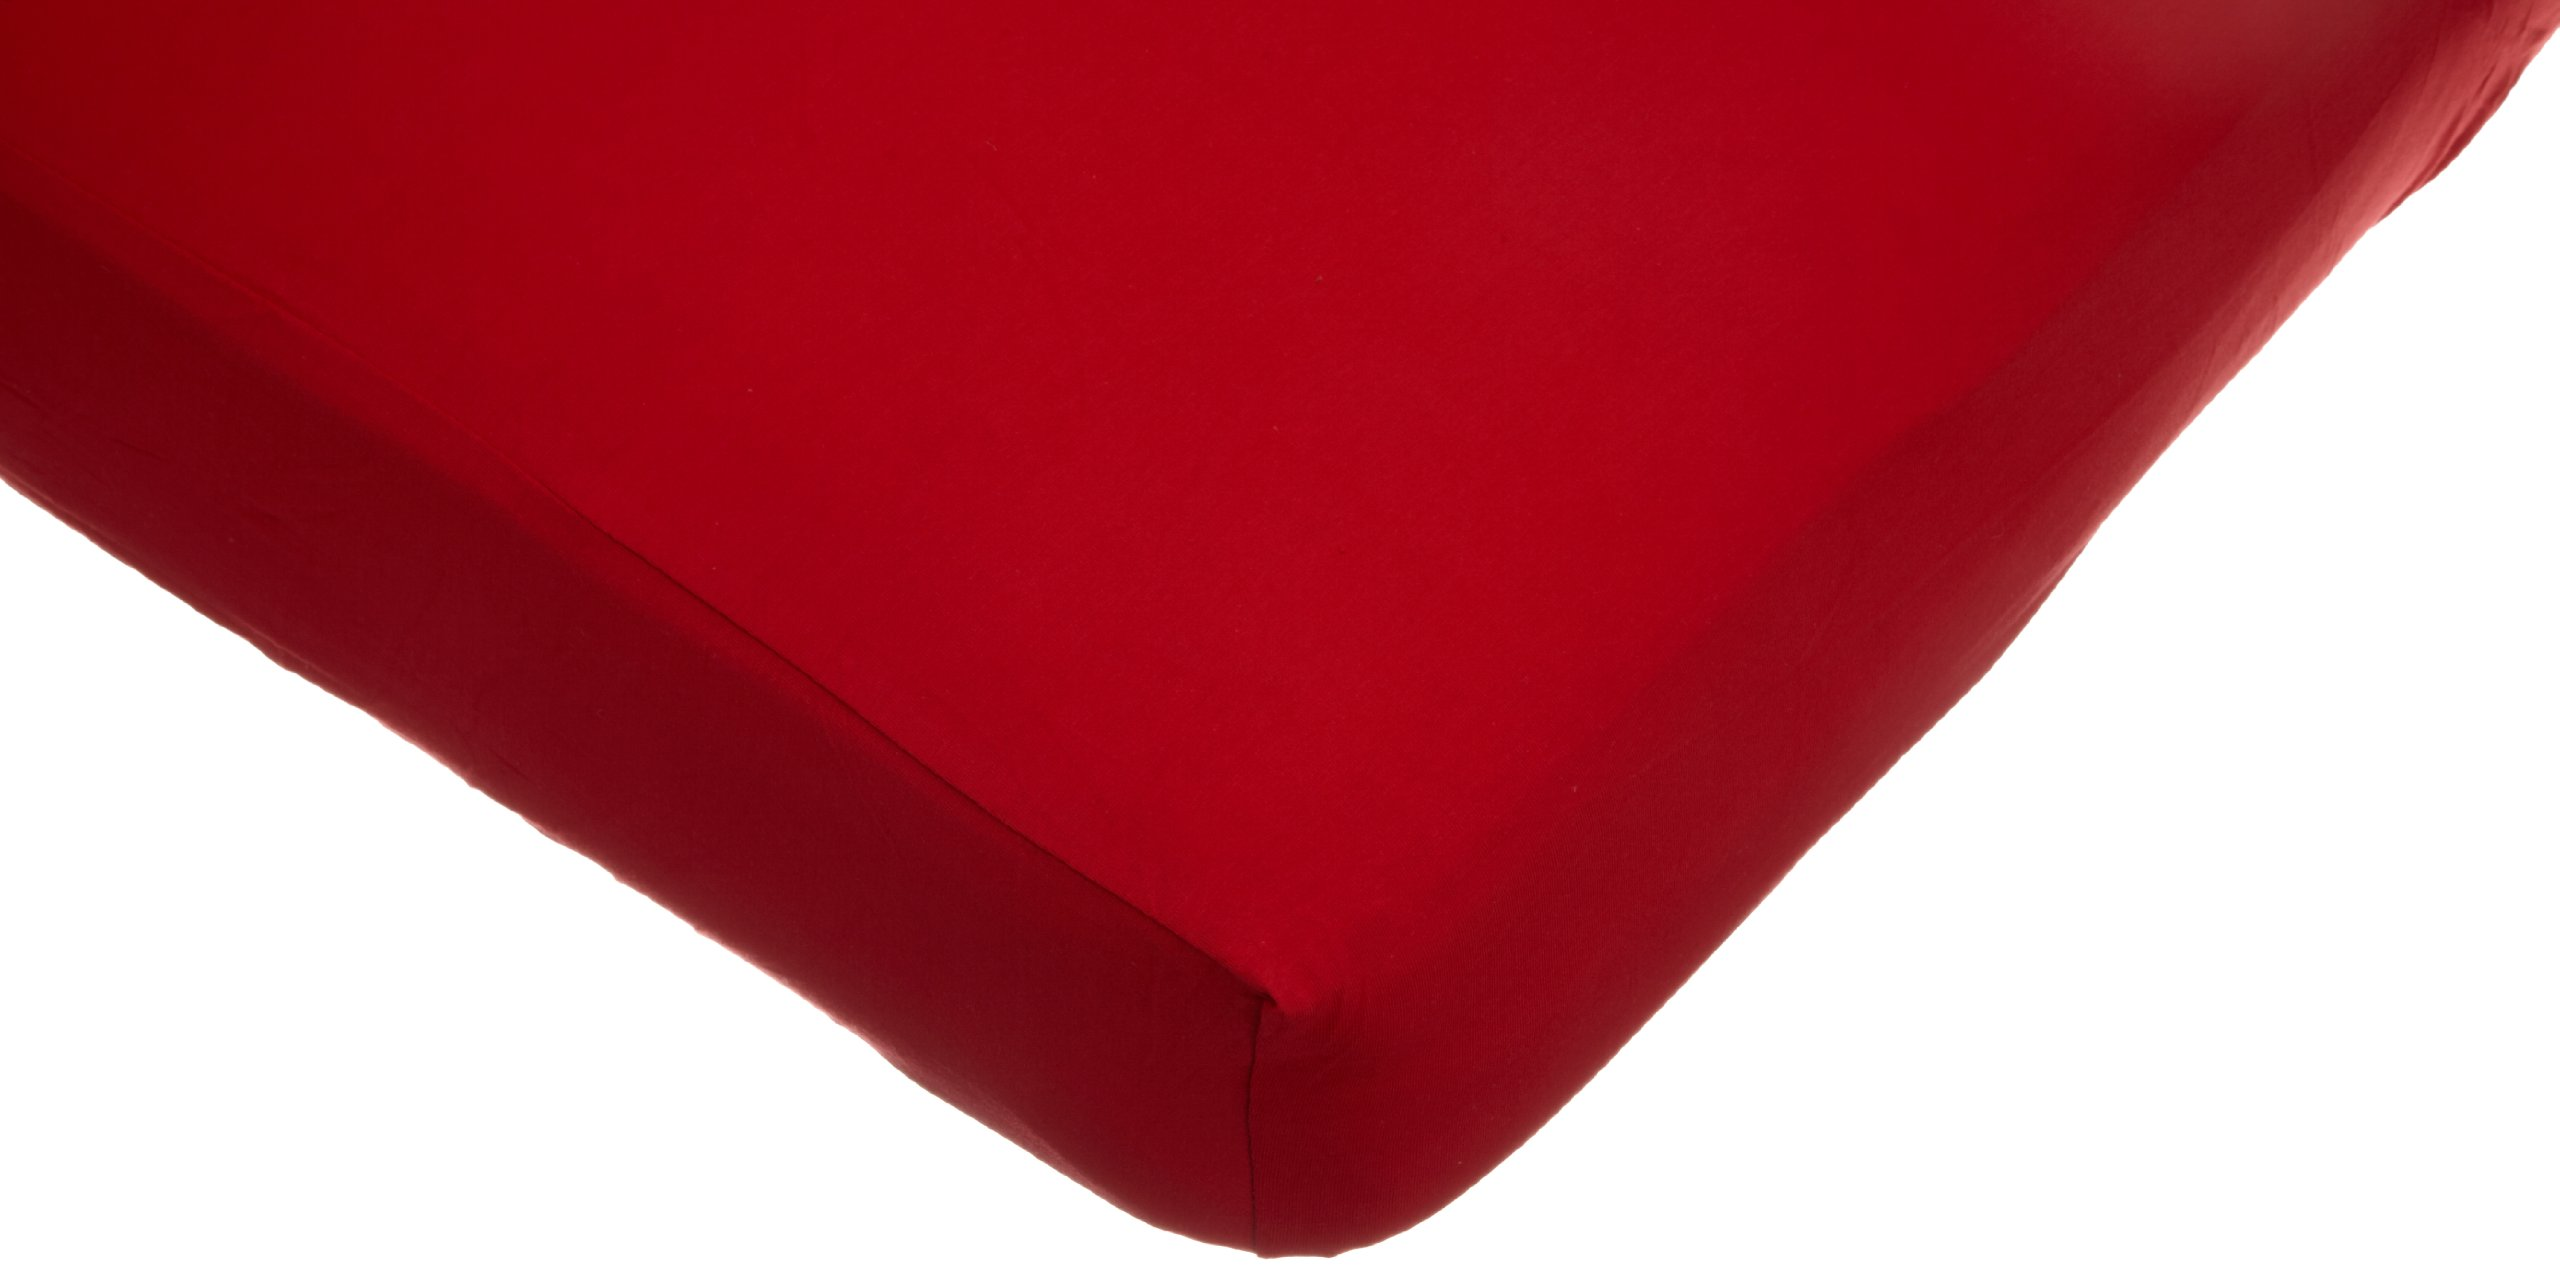 American Baby Company Supreme 100% Cotton Jersey Knit Fitted Crib Sheet for Standard Crib and Toddler Mattresses, Red